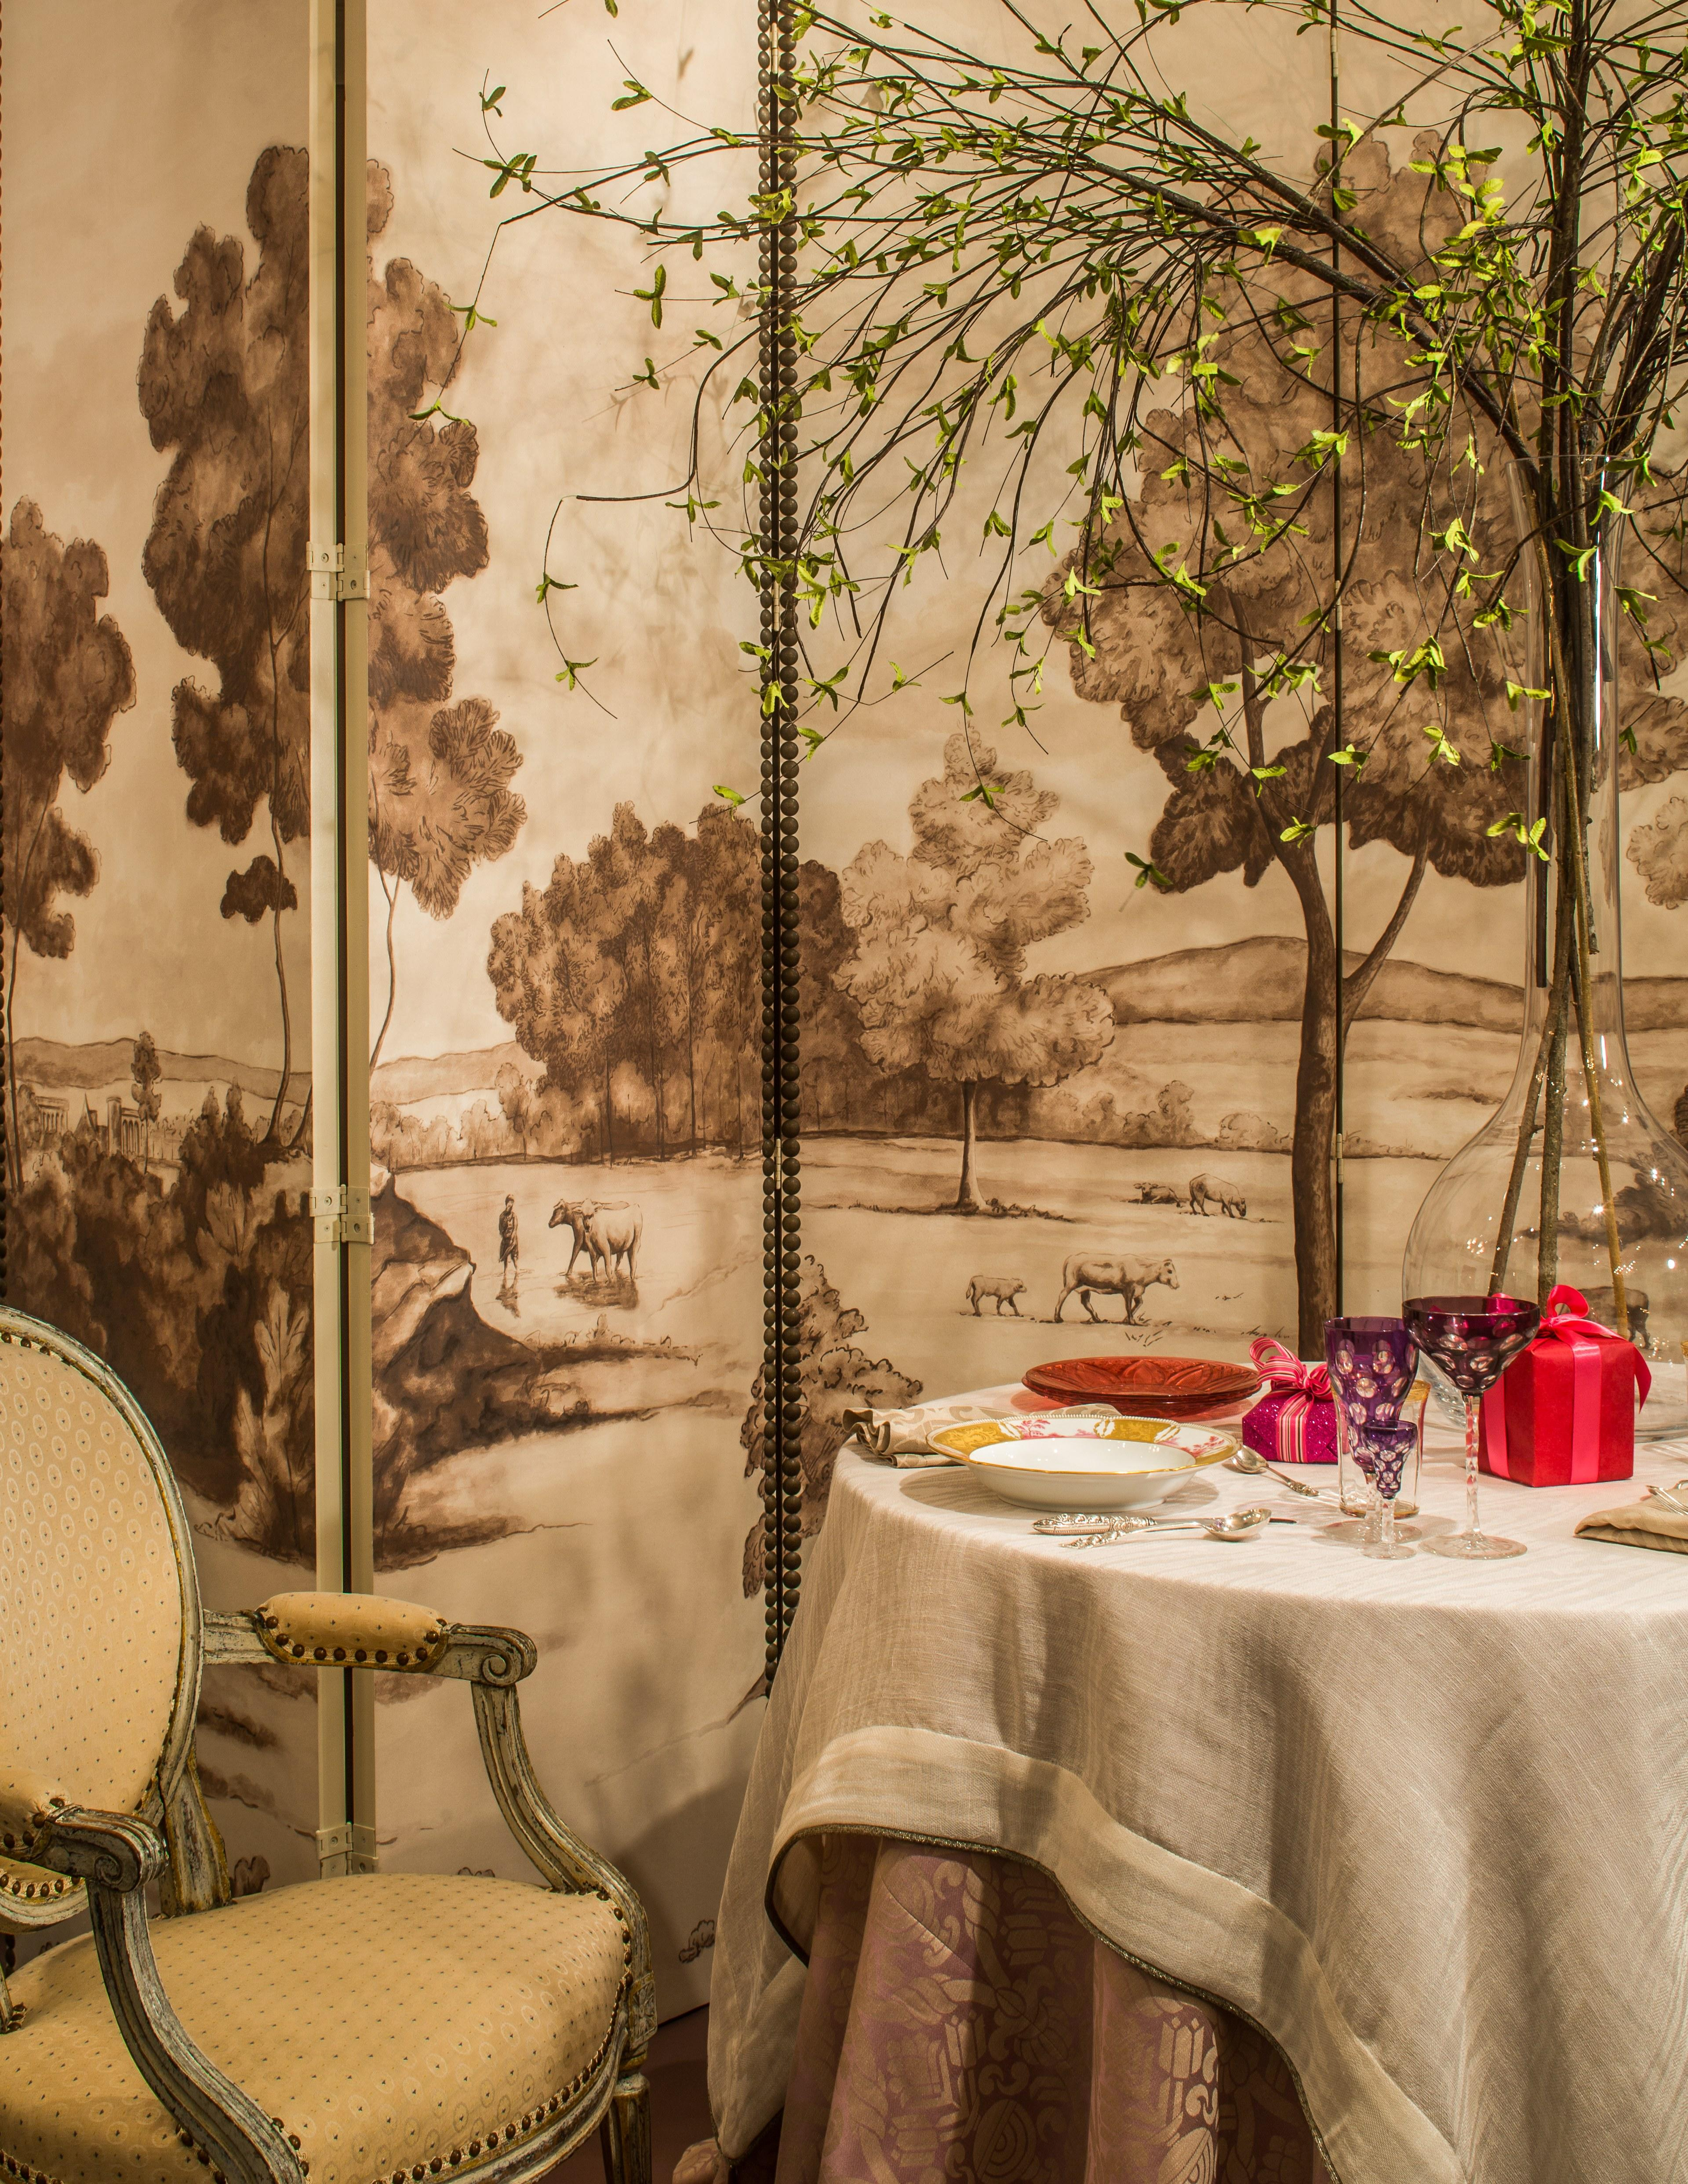 """""""It's such a pleasure to get to use these things we don't see every day,"""" marvels Virginia-based Dixon. To highlight the china he selected, the designer opted not to go all out, but rather to use neutral, understated visuals that let Post's treasures take center stage. """"We were imagining a romantic dinner for two in honor of Valentine's Day,"""" he says. He set the scene with fabrics from his line for Vervain and vintage chairs, then added an additional personal note with silverware his family bought in Thailand and heirloom glasses. """"I love the idea of my grandmother's glassware sitting next to these incredible heirlooms from imperial Russia,"""" he says."""